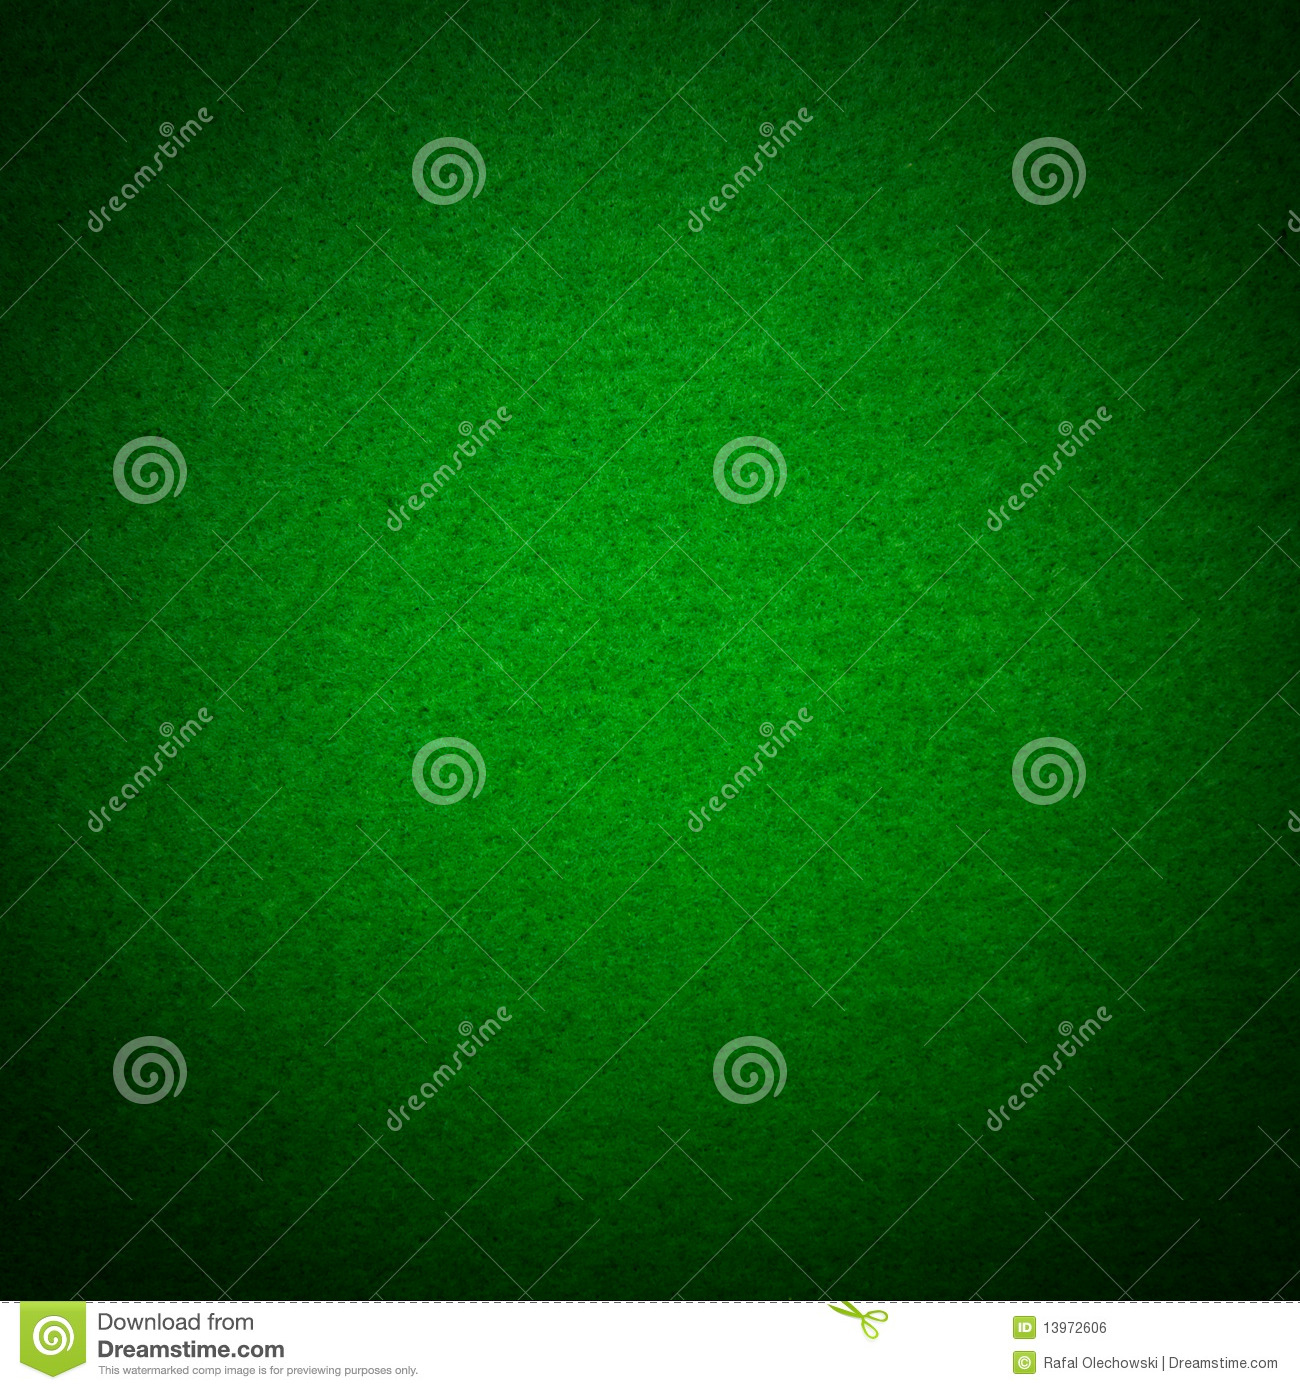 Poker table background - Poker Table Felt Background